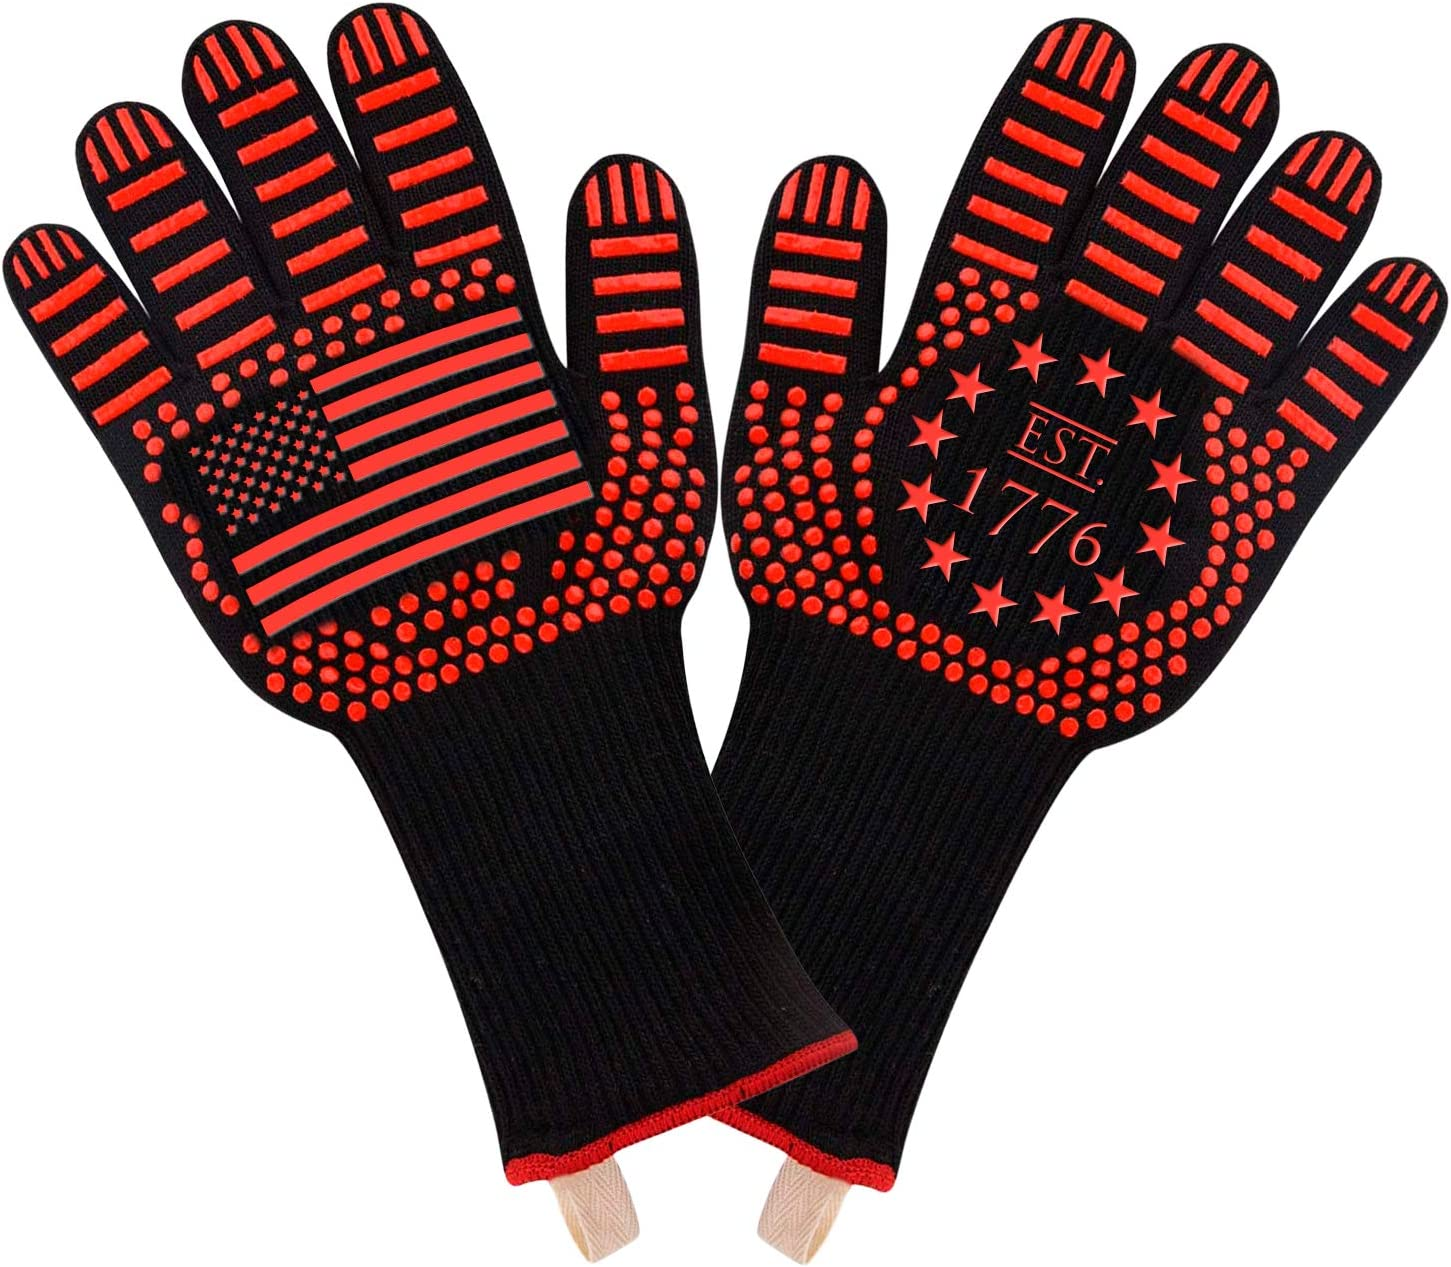 American Flag Extreme Heat Resistant Gloves Oven Grea BBQ – Fixed price Industry No. 1 for sale